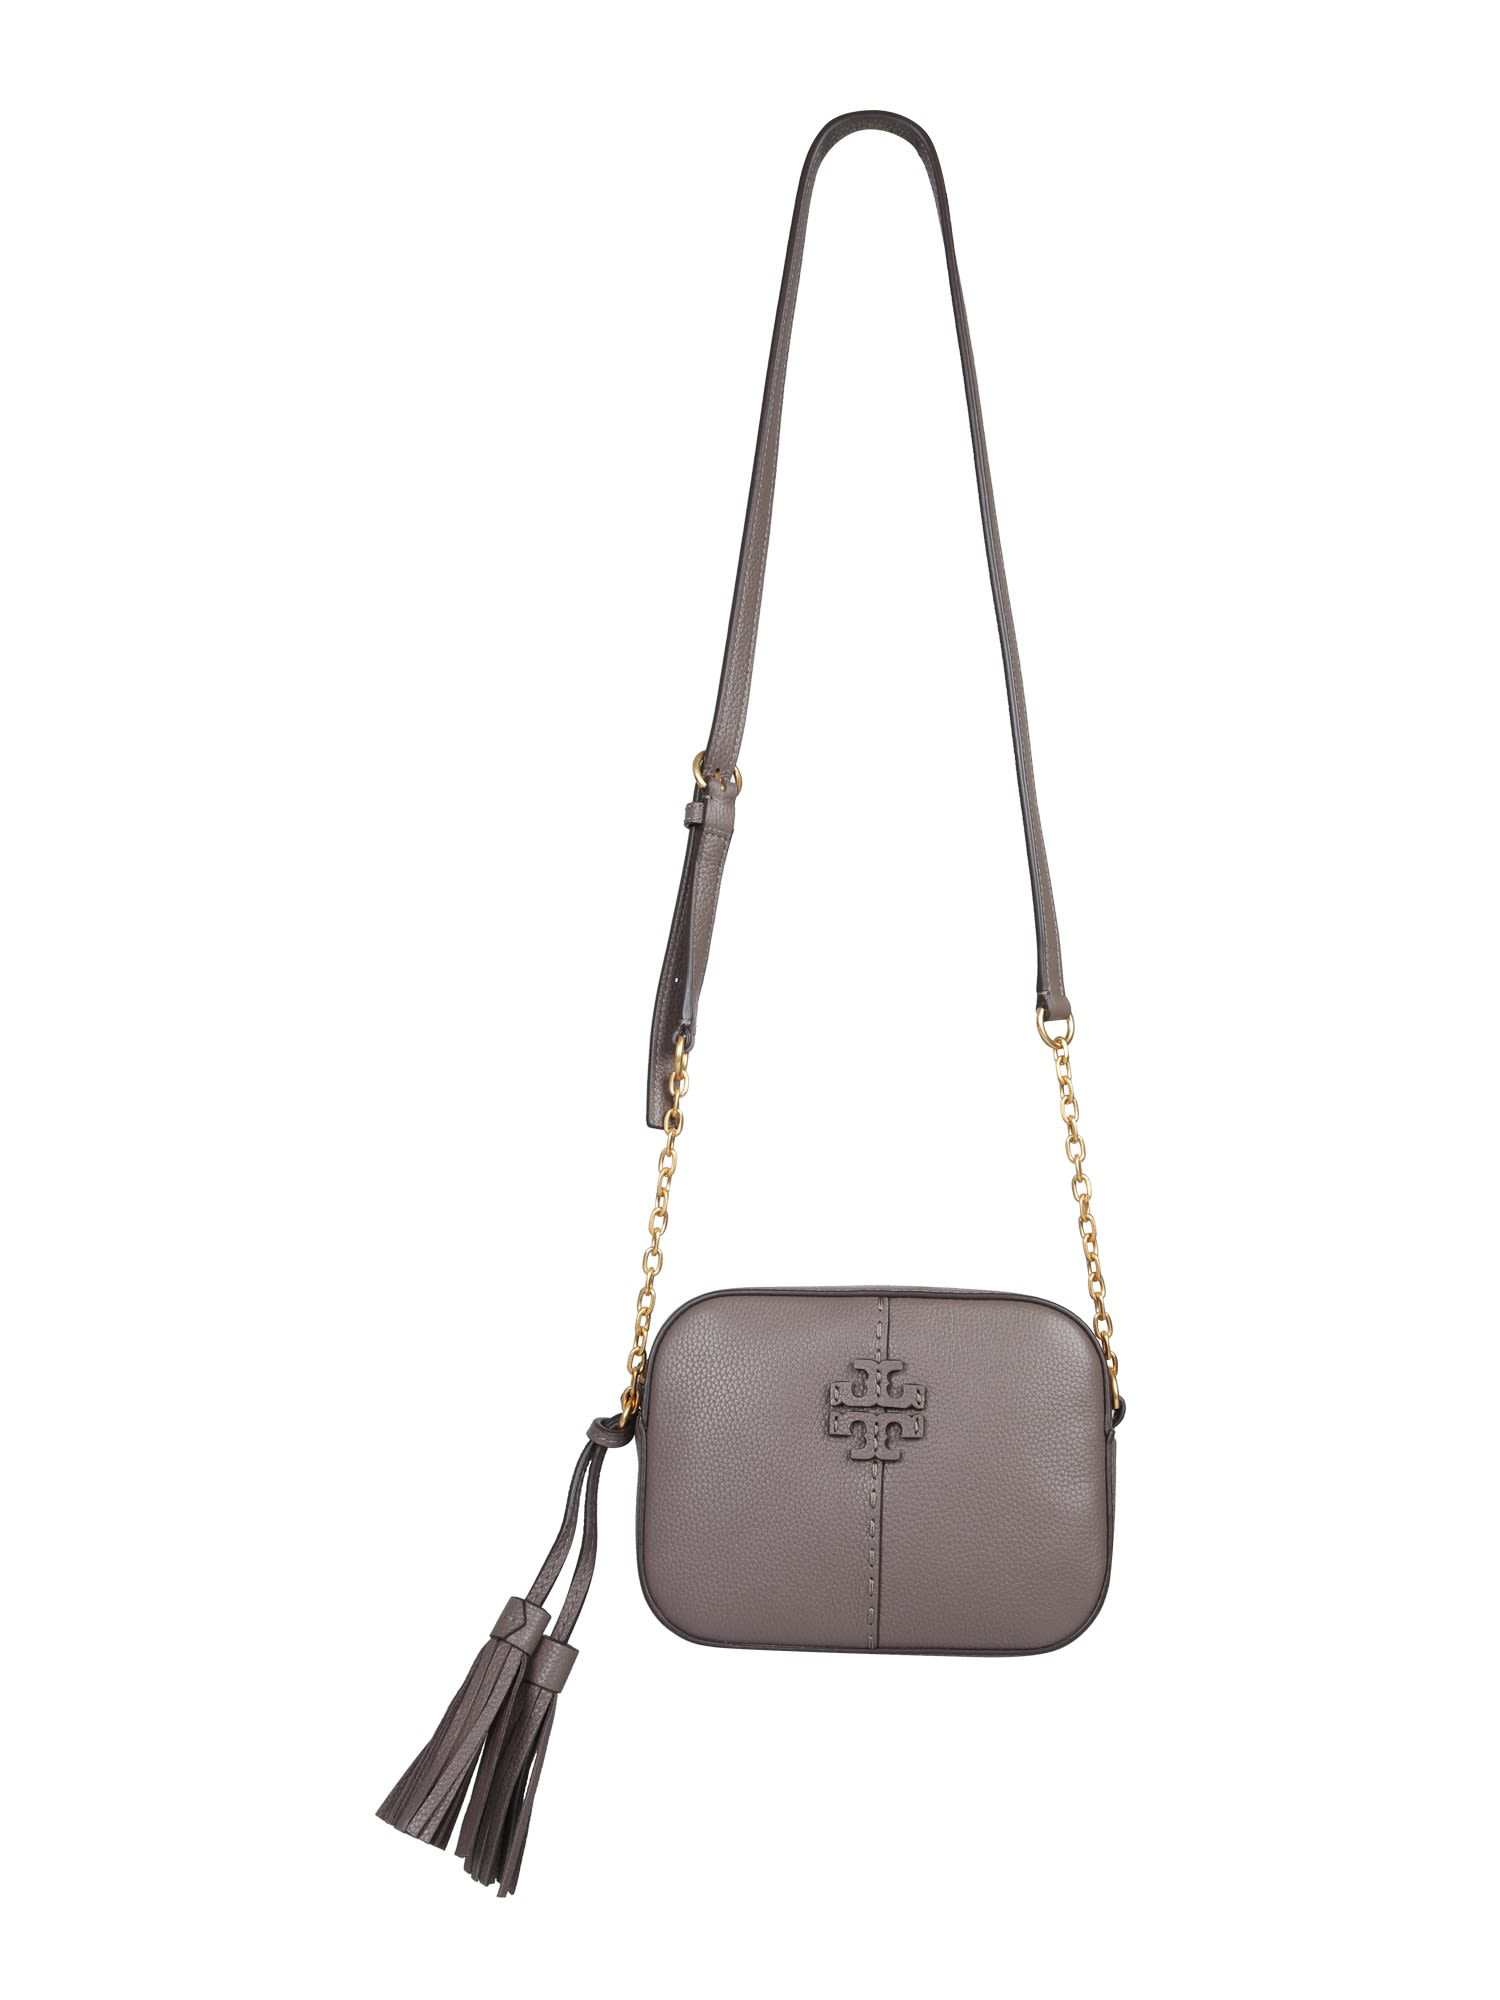 Tory Burch Bags MCGRAW SHOULDER BAG